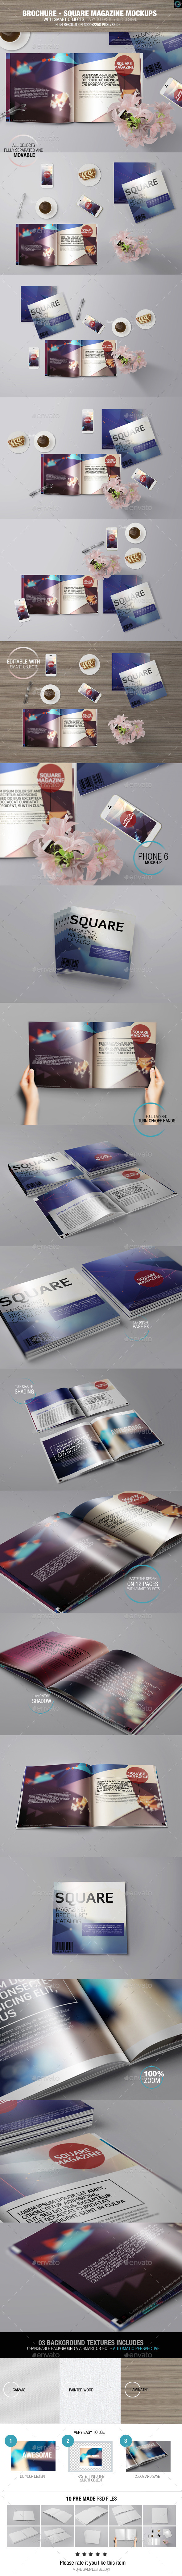 GraphicRiver Brochure Square Magazine Mockups 8989728